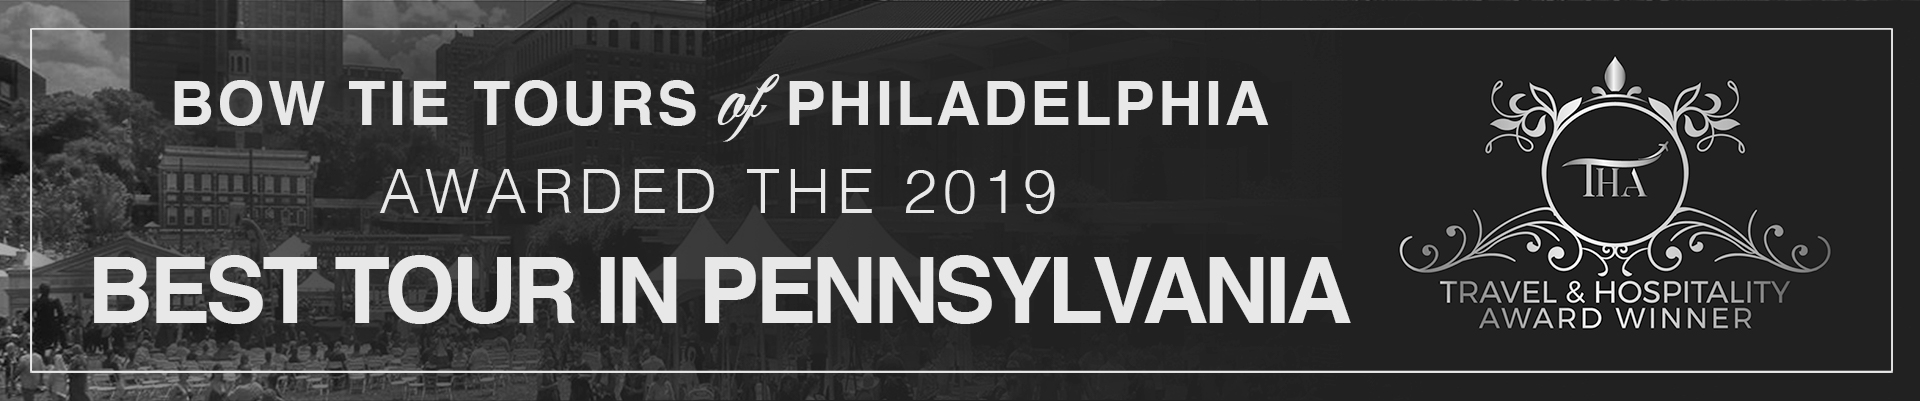 2019 Best Tour in Pennsylvania